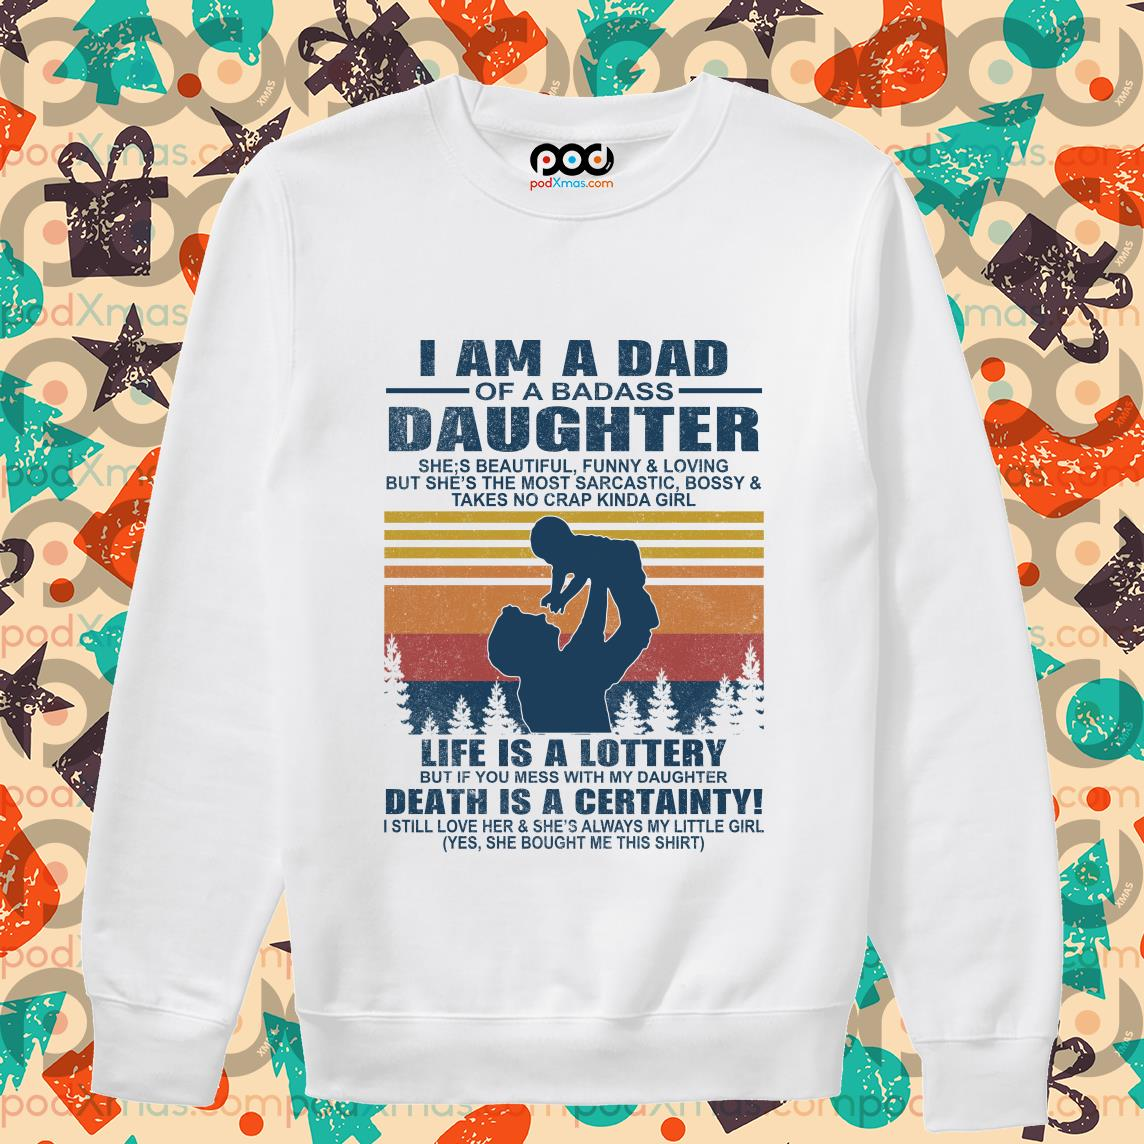 i am a dad of a dabass daughter life is a lottery beath is certainty sweater